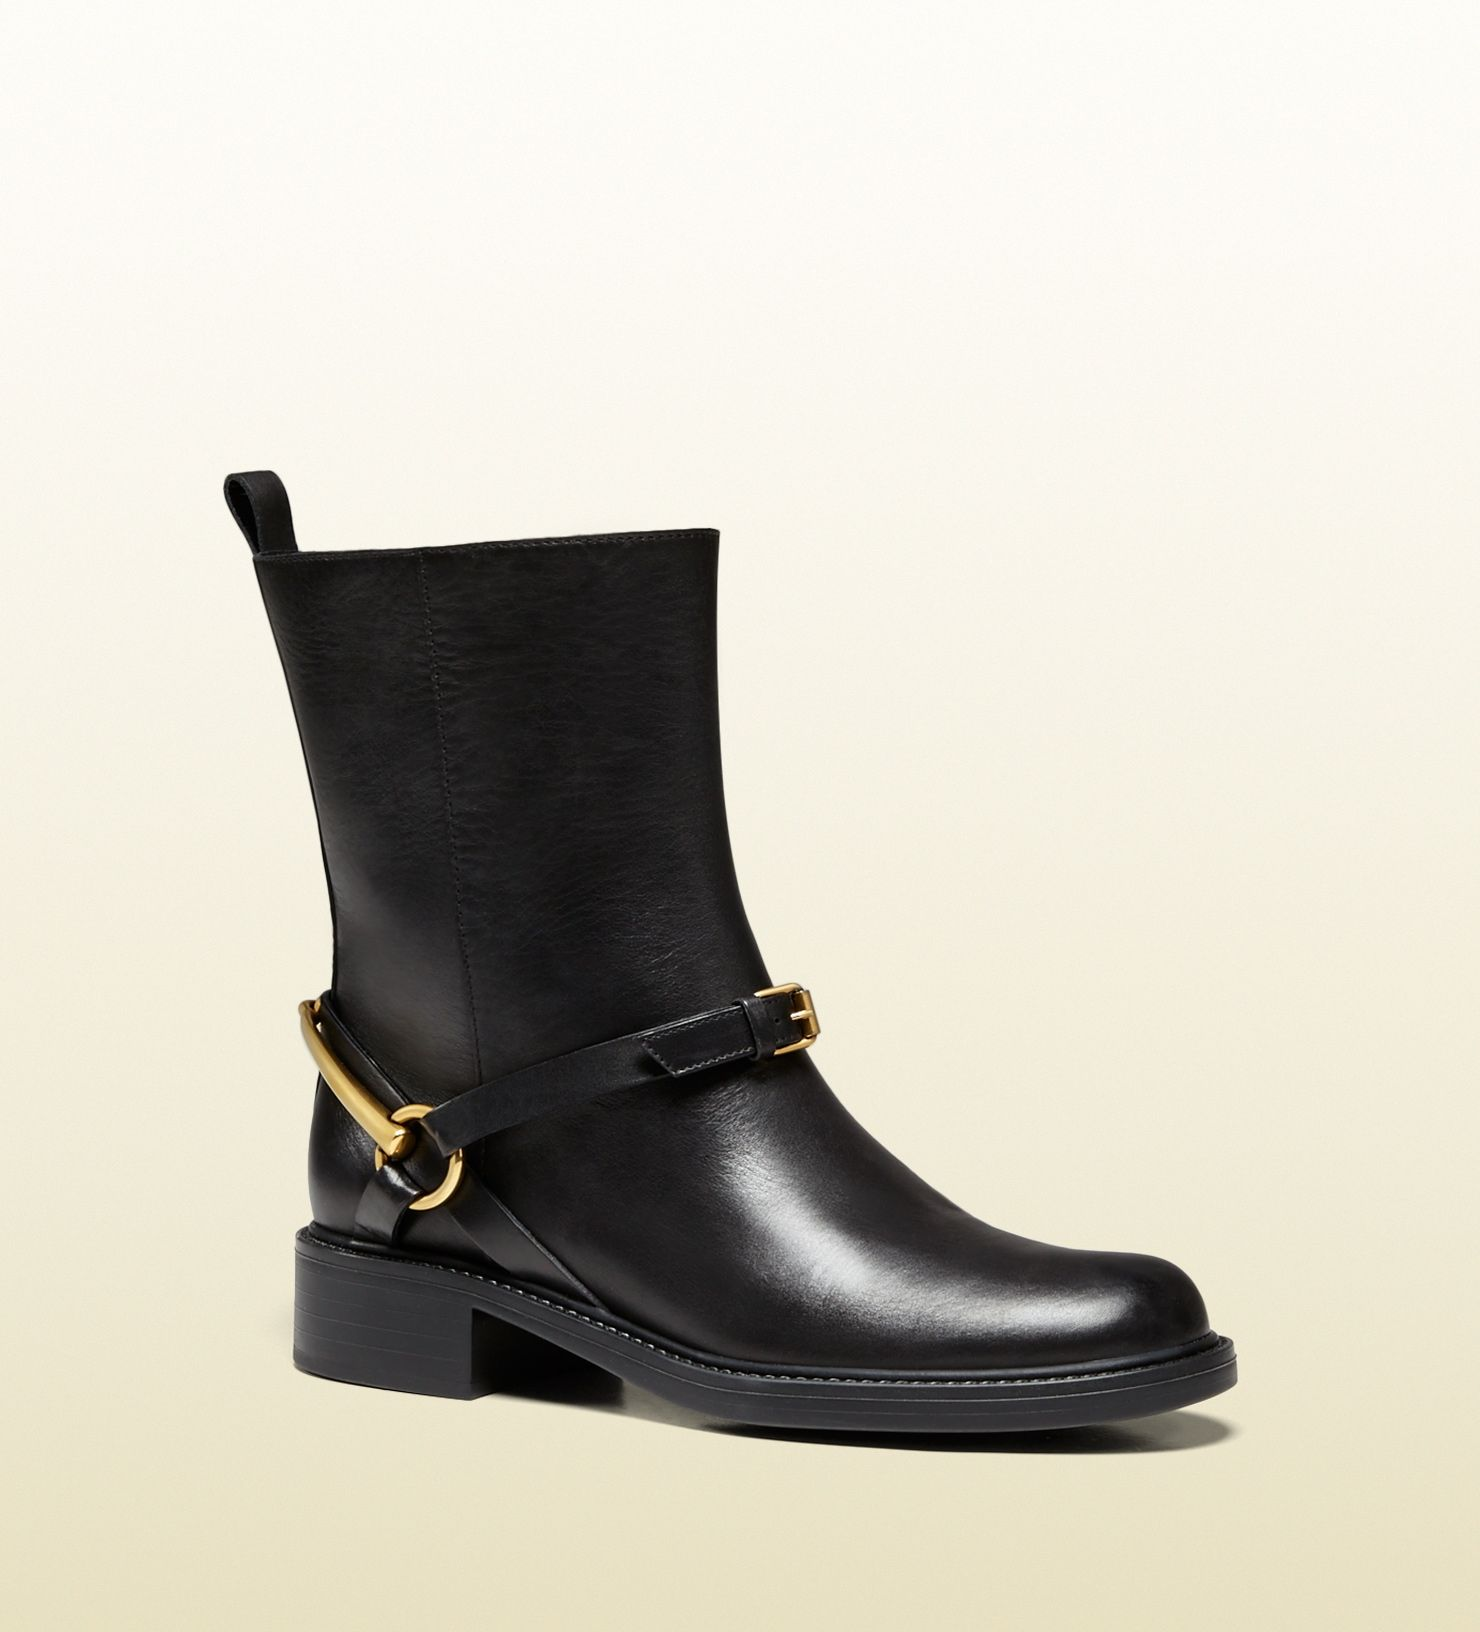 2dfe4113833 Gucci - 353792 A3N00 1000 - tess leather horsebit ankle boot - black leather*Made  in Italy horsebit detail with buckle pull on metal gucci logo under the ...